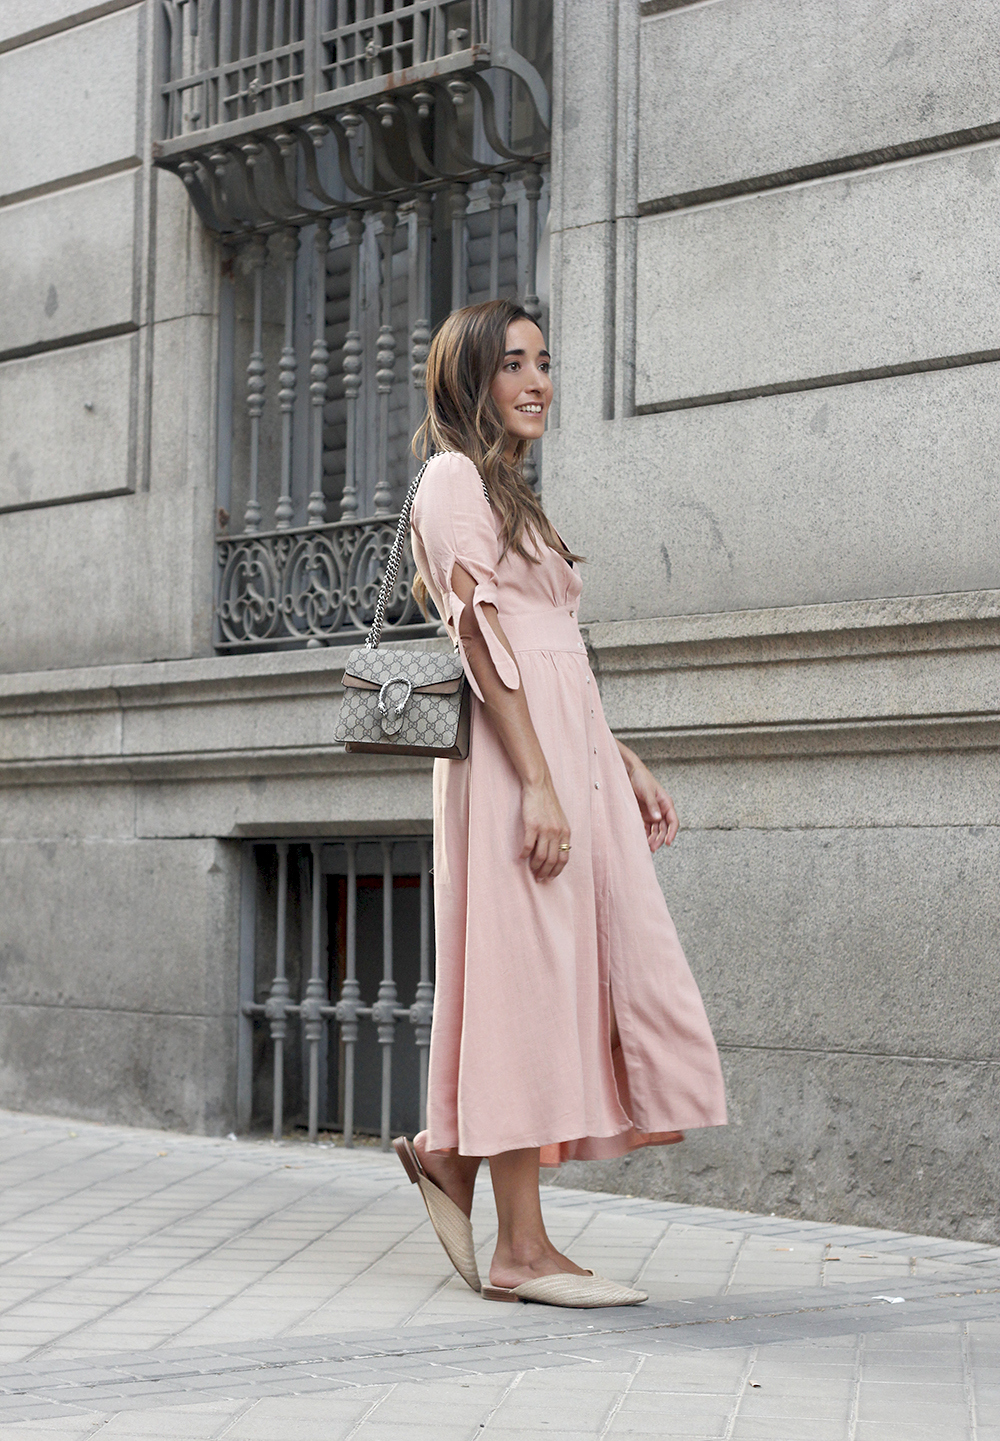 pink midi dress mules gucci bag outfit street style 201809